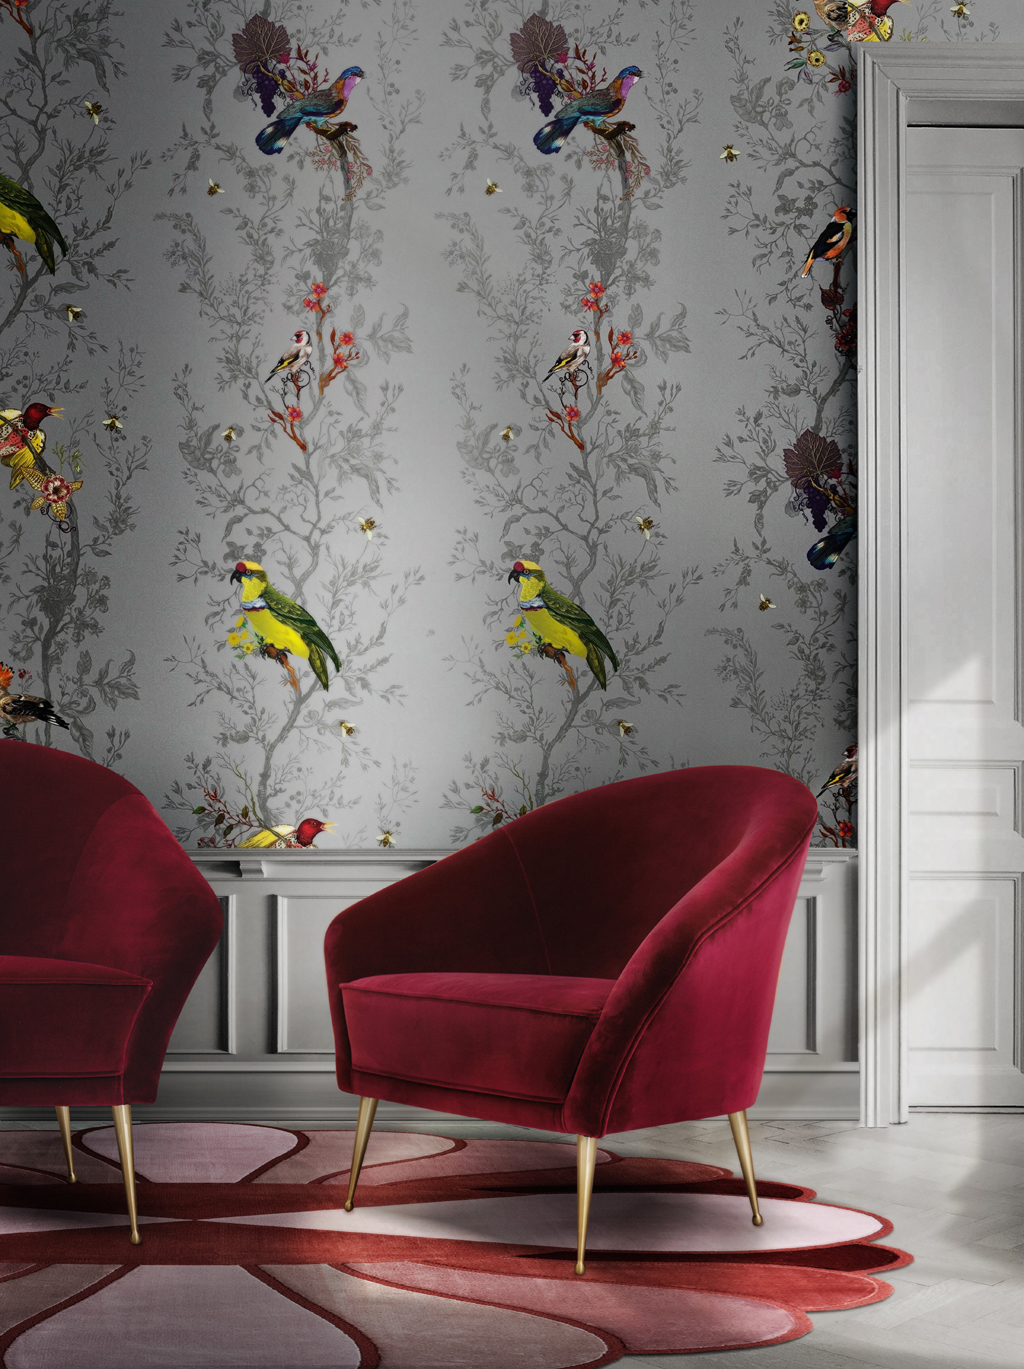 a bold interior design with red chiclet chair by koket and bird wallpaper